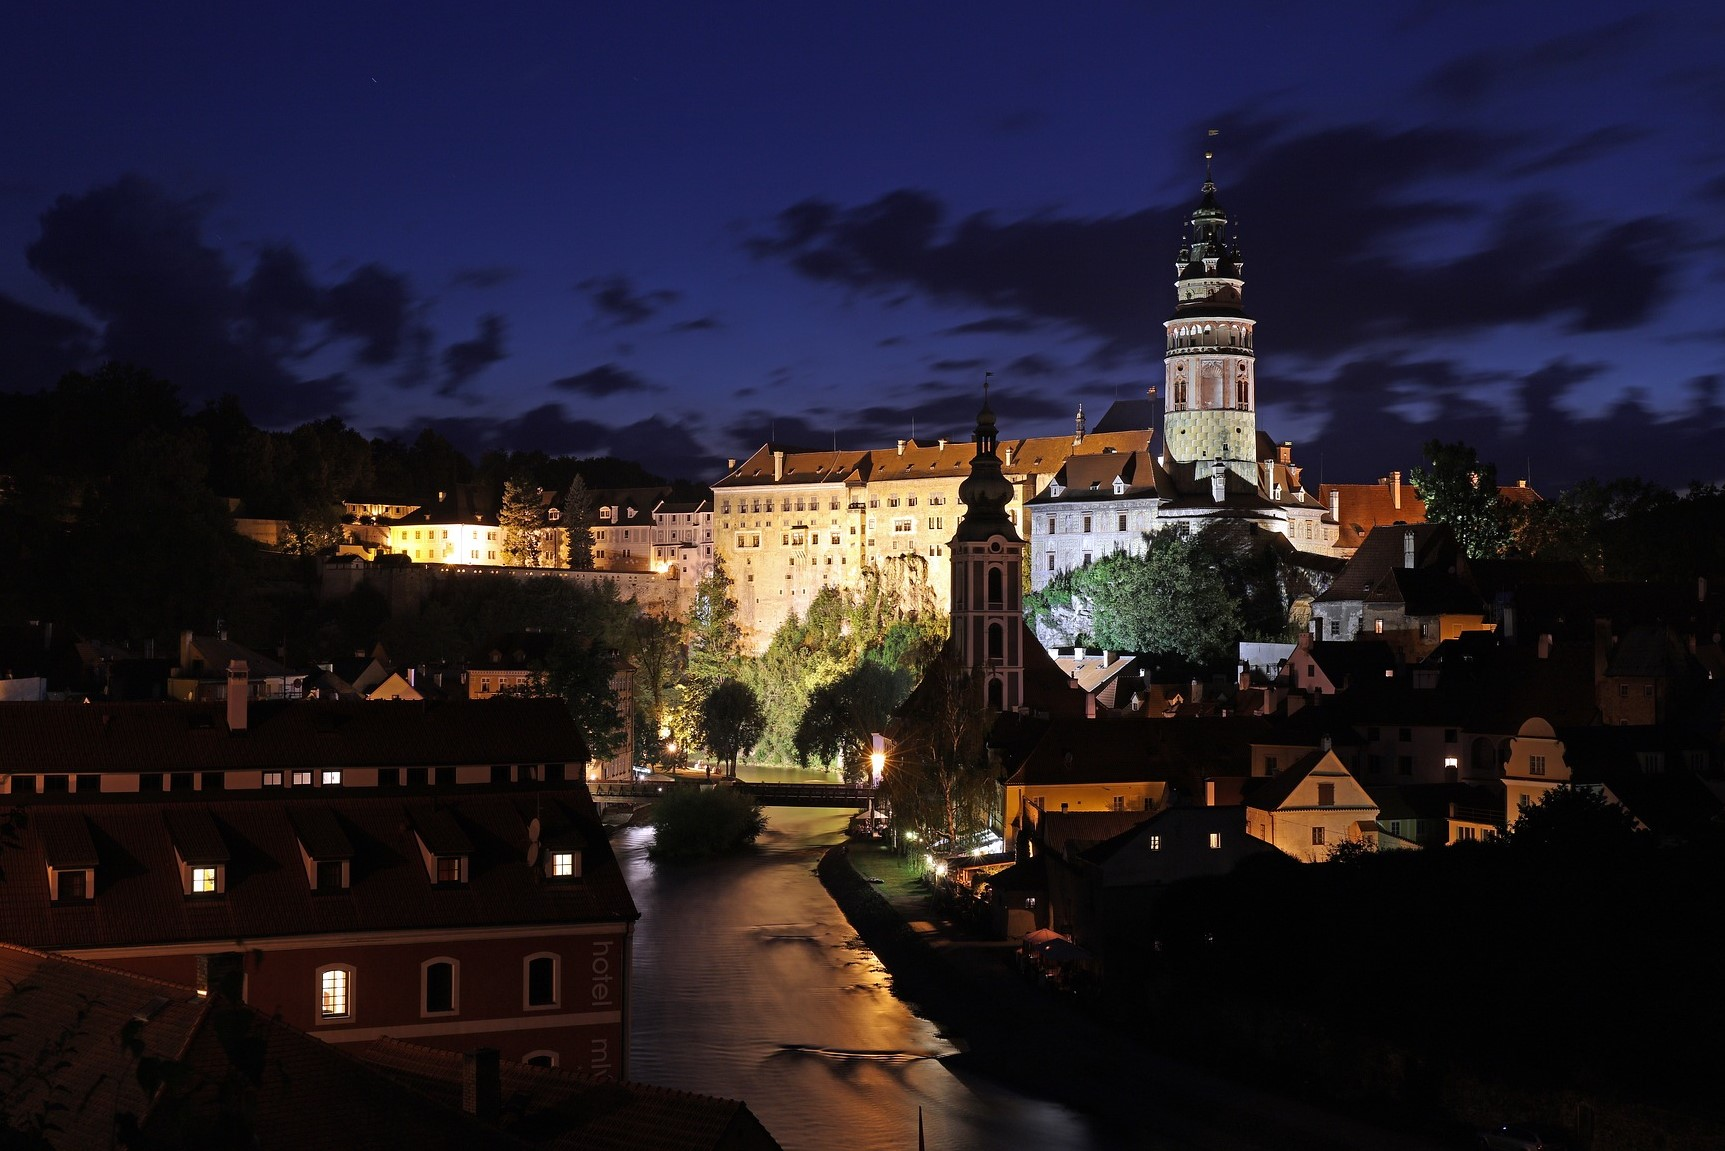 Beautiful night view of the castle in Český Krumlov.